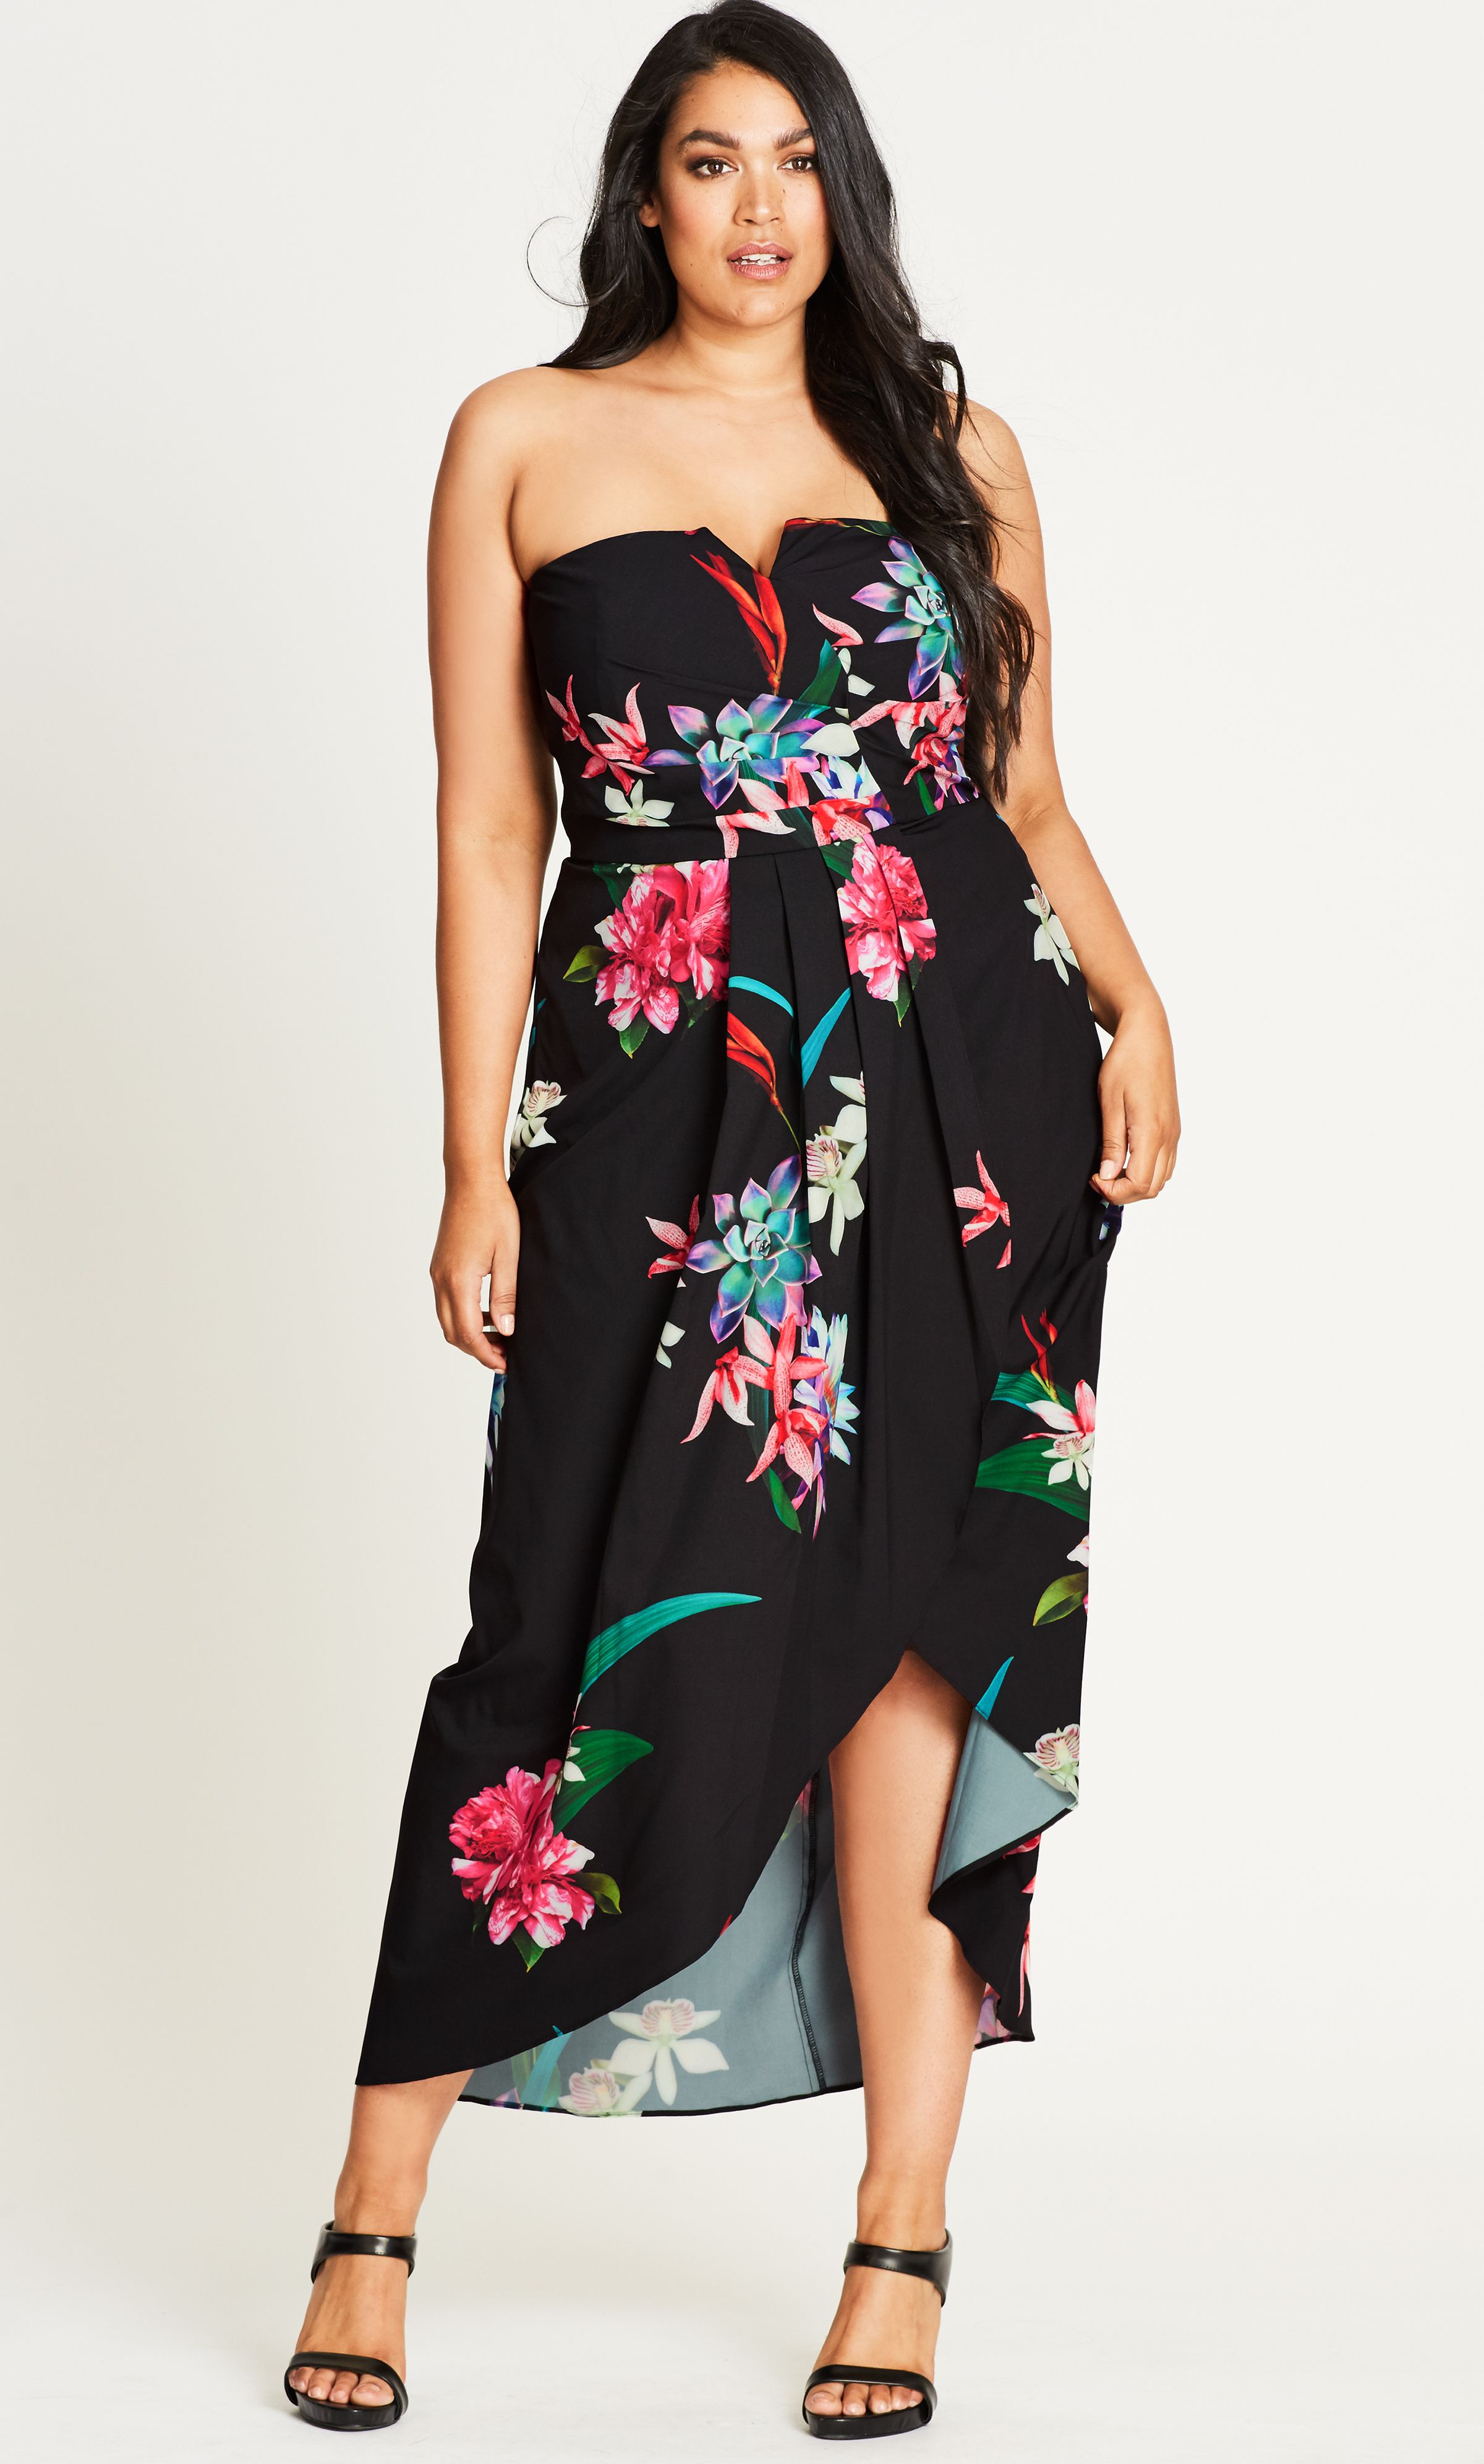 Plus size beach wedding guest dresses  Get your hands on the bold floral print of the Succulent Wrap Maxi